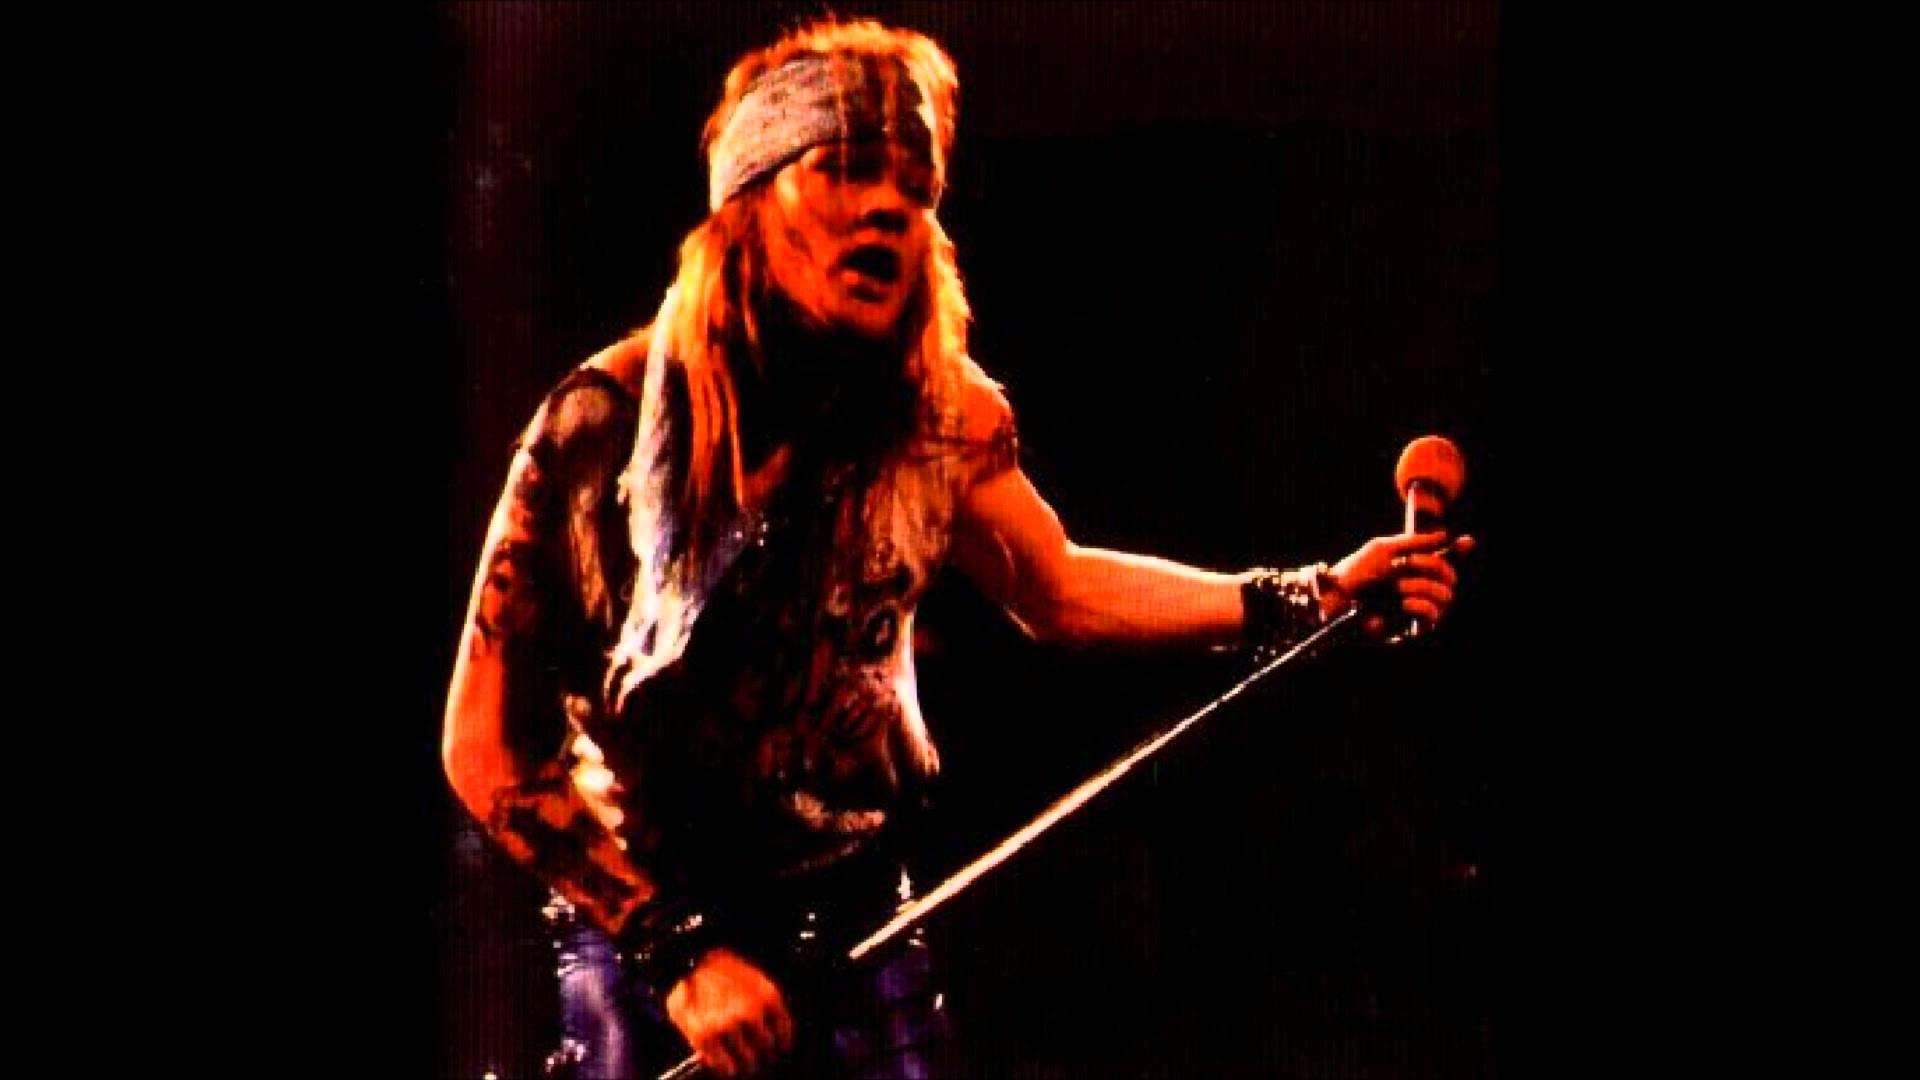 axl rose wallpaper - photo #18